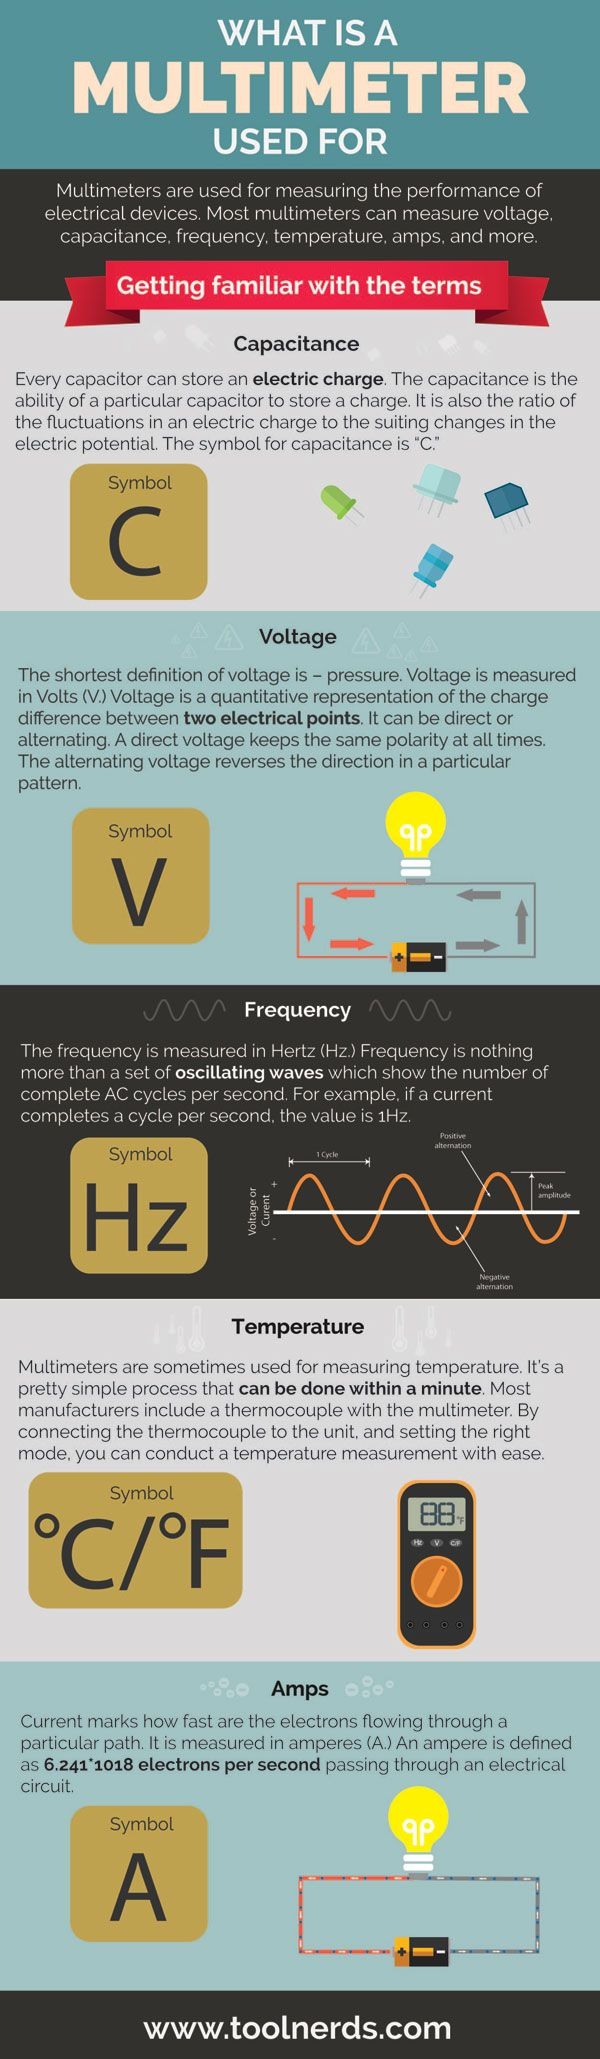 22 best Multimeters images on Pinterest | Electric power tools ...